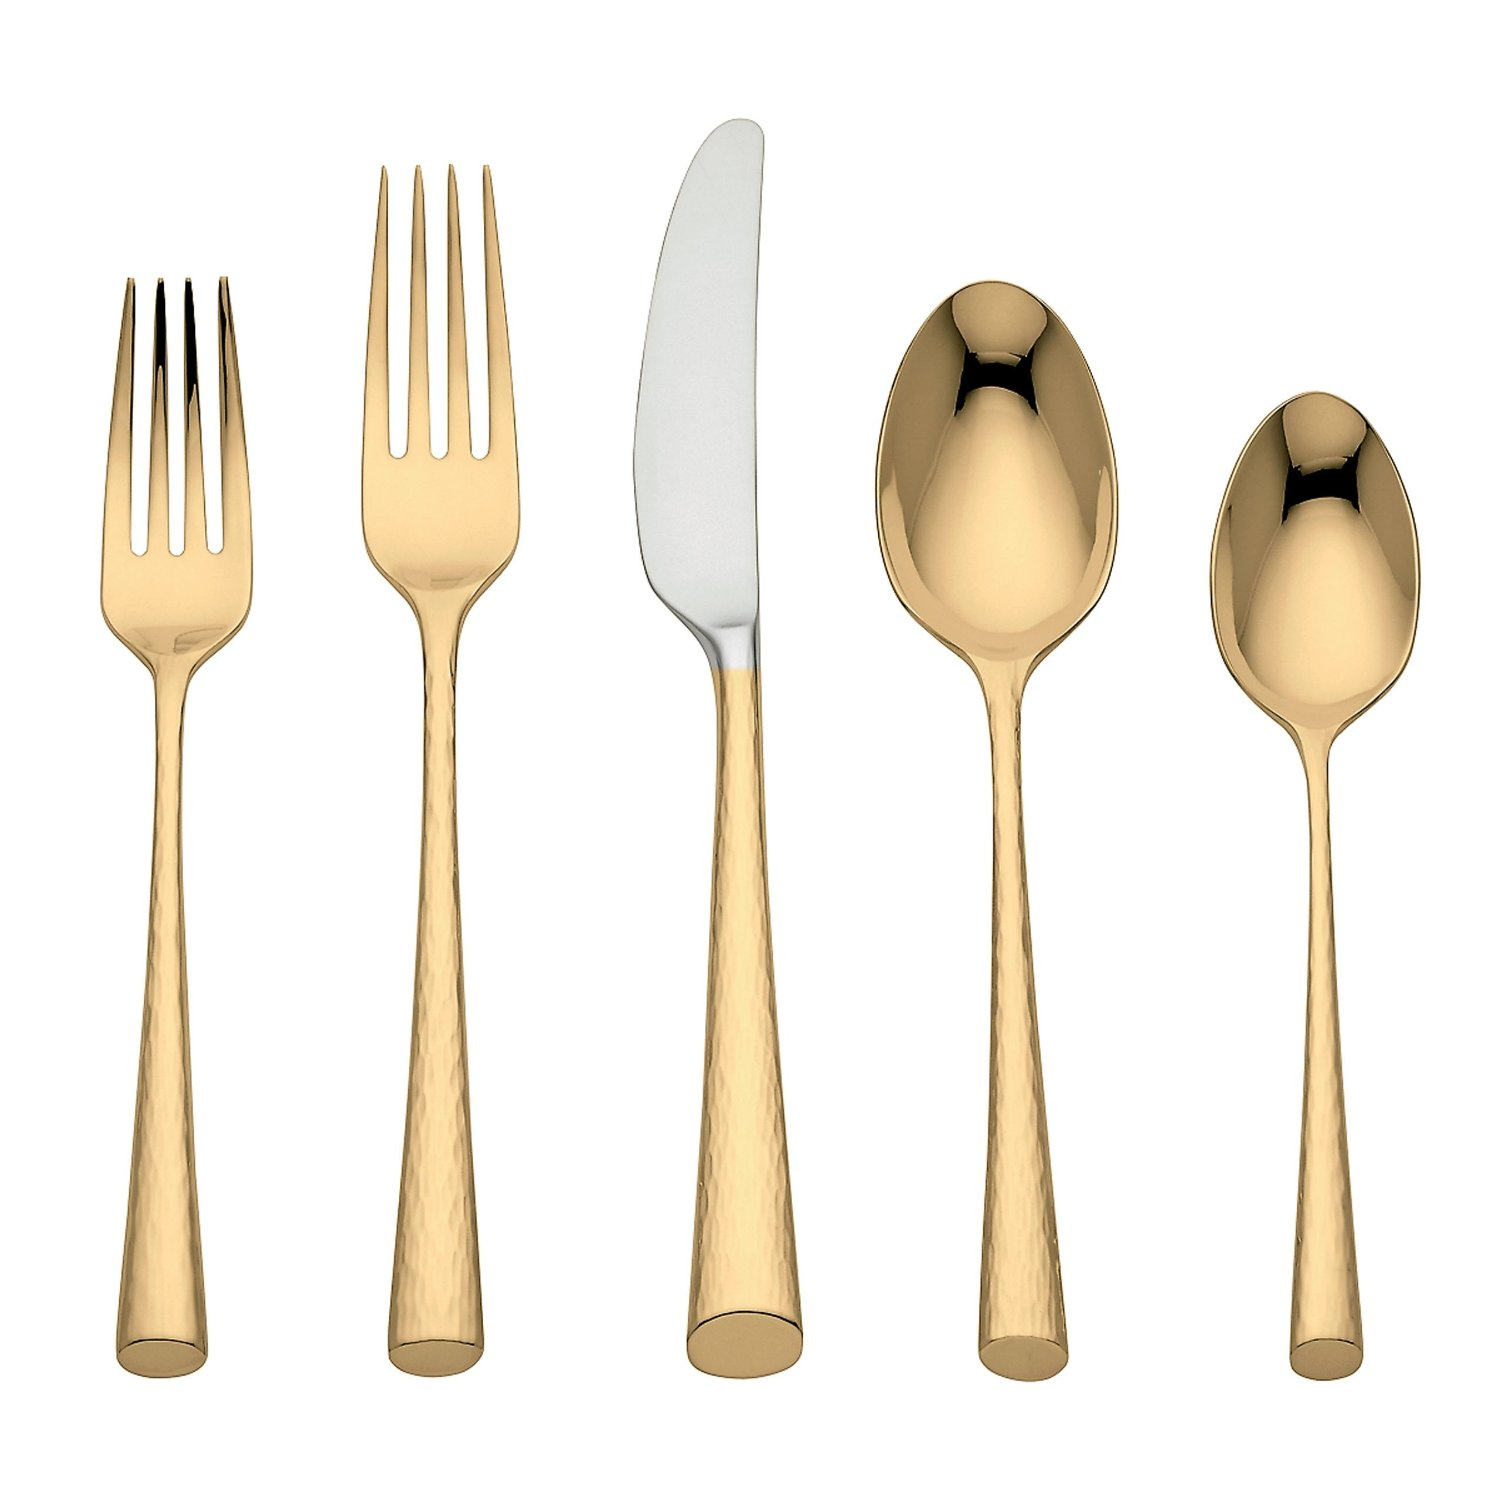 Amazing gold flatware for kitchen and dining sets ideas with gold flatware set